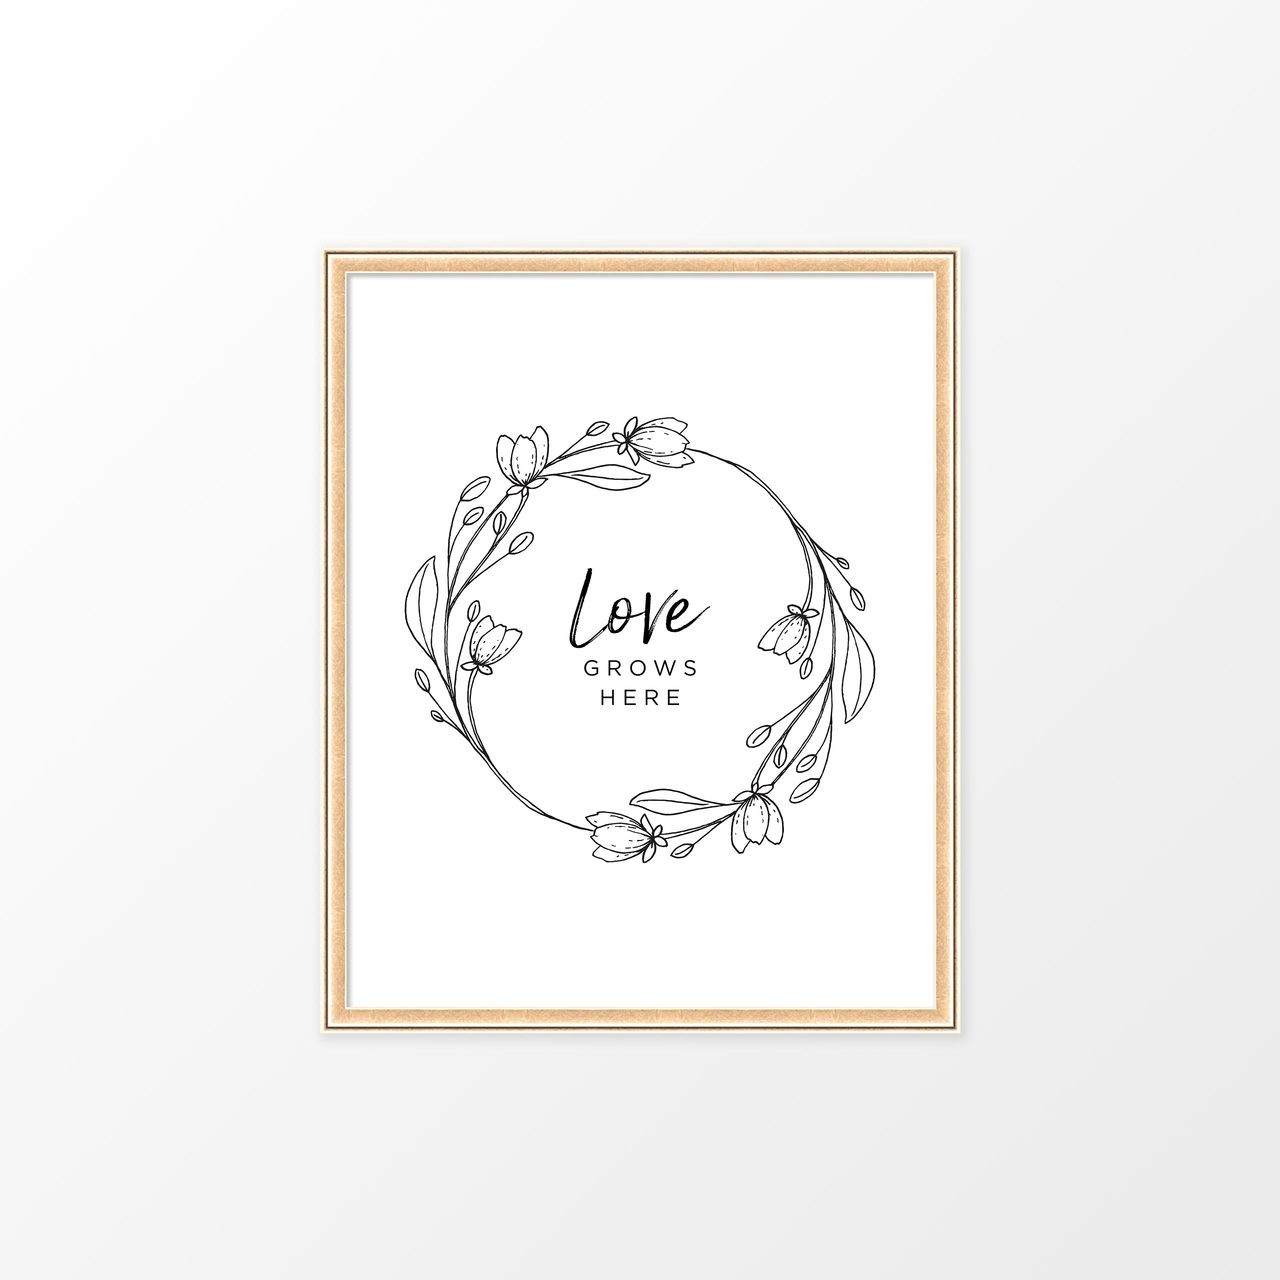 'Love Grows Here' Art Print from The Printed Home (Printable)